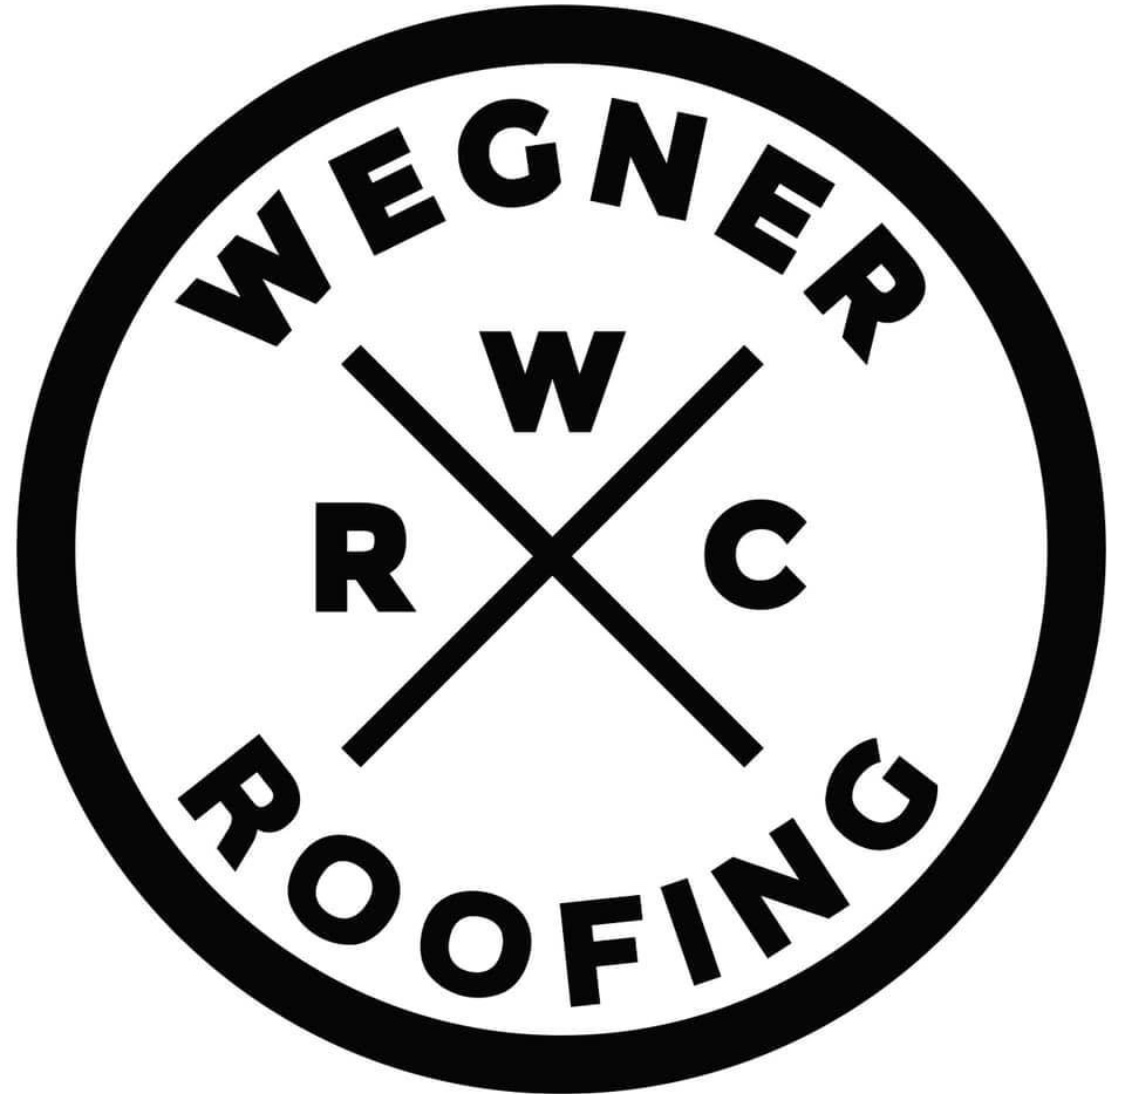 Wegner Roofing and Construction Advises on the Importance of Hiring a Licensed Roofing Contractor